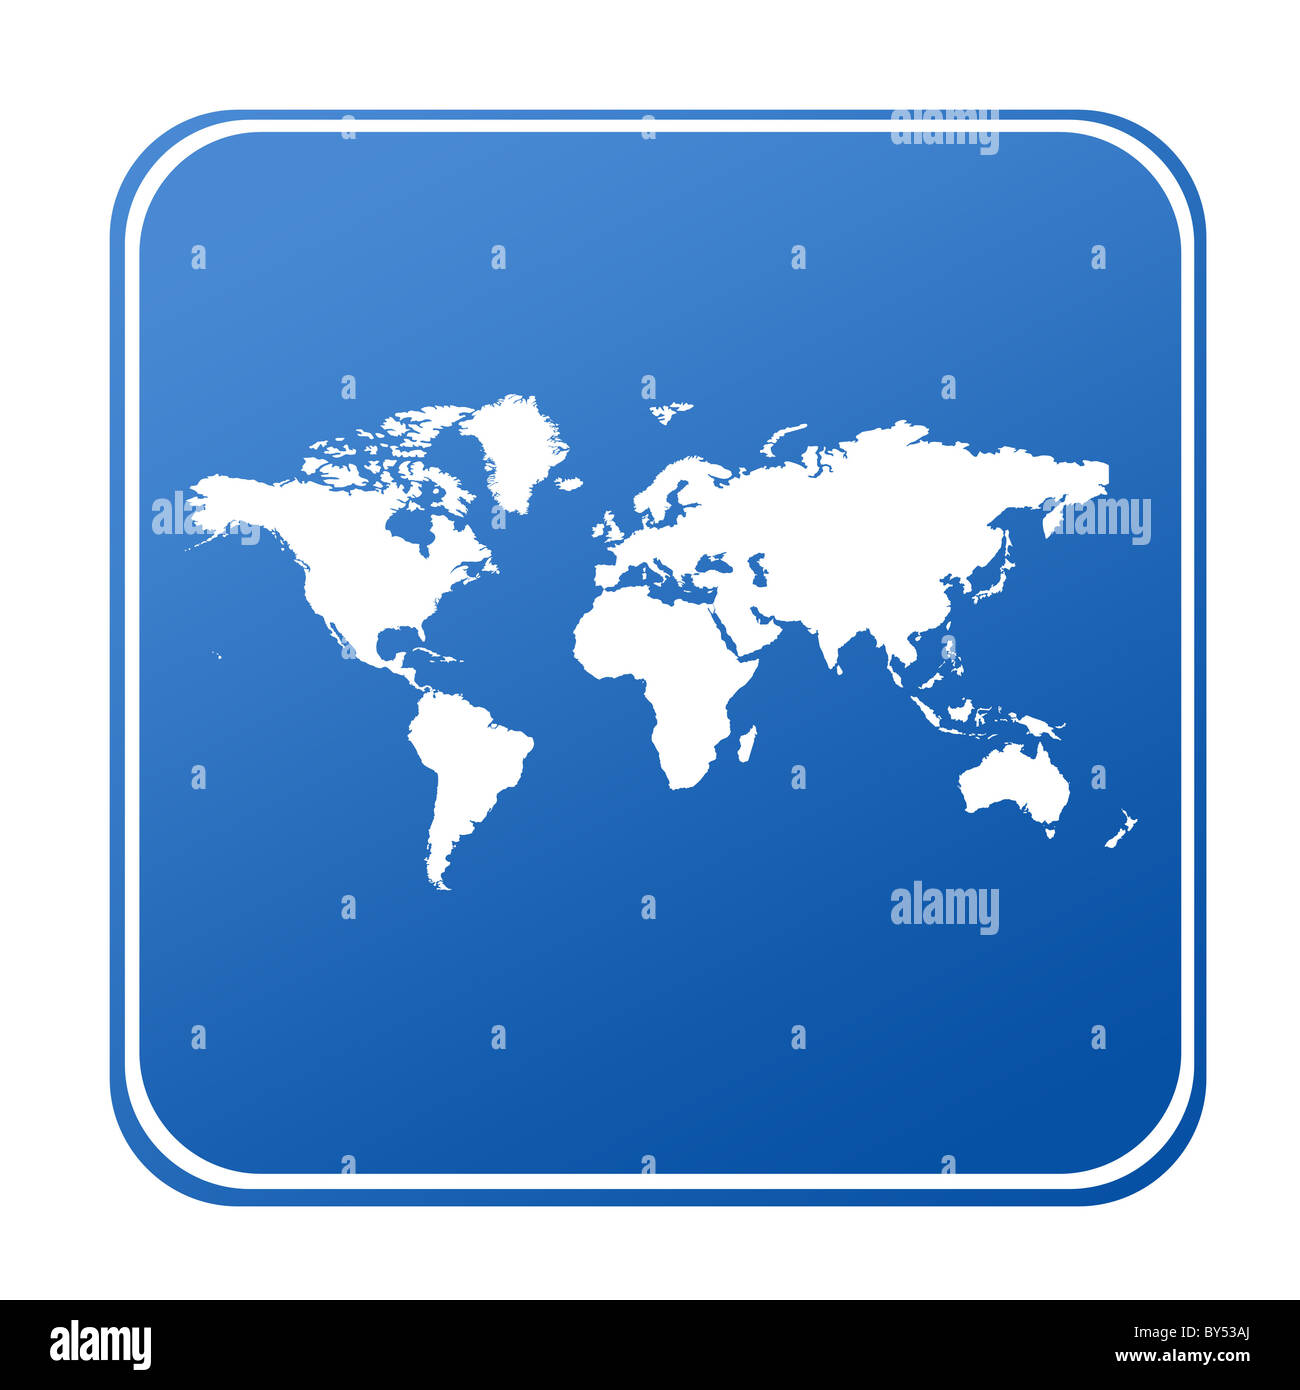 Map of World on blue button; isolated on white background. Stock Photo